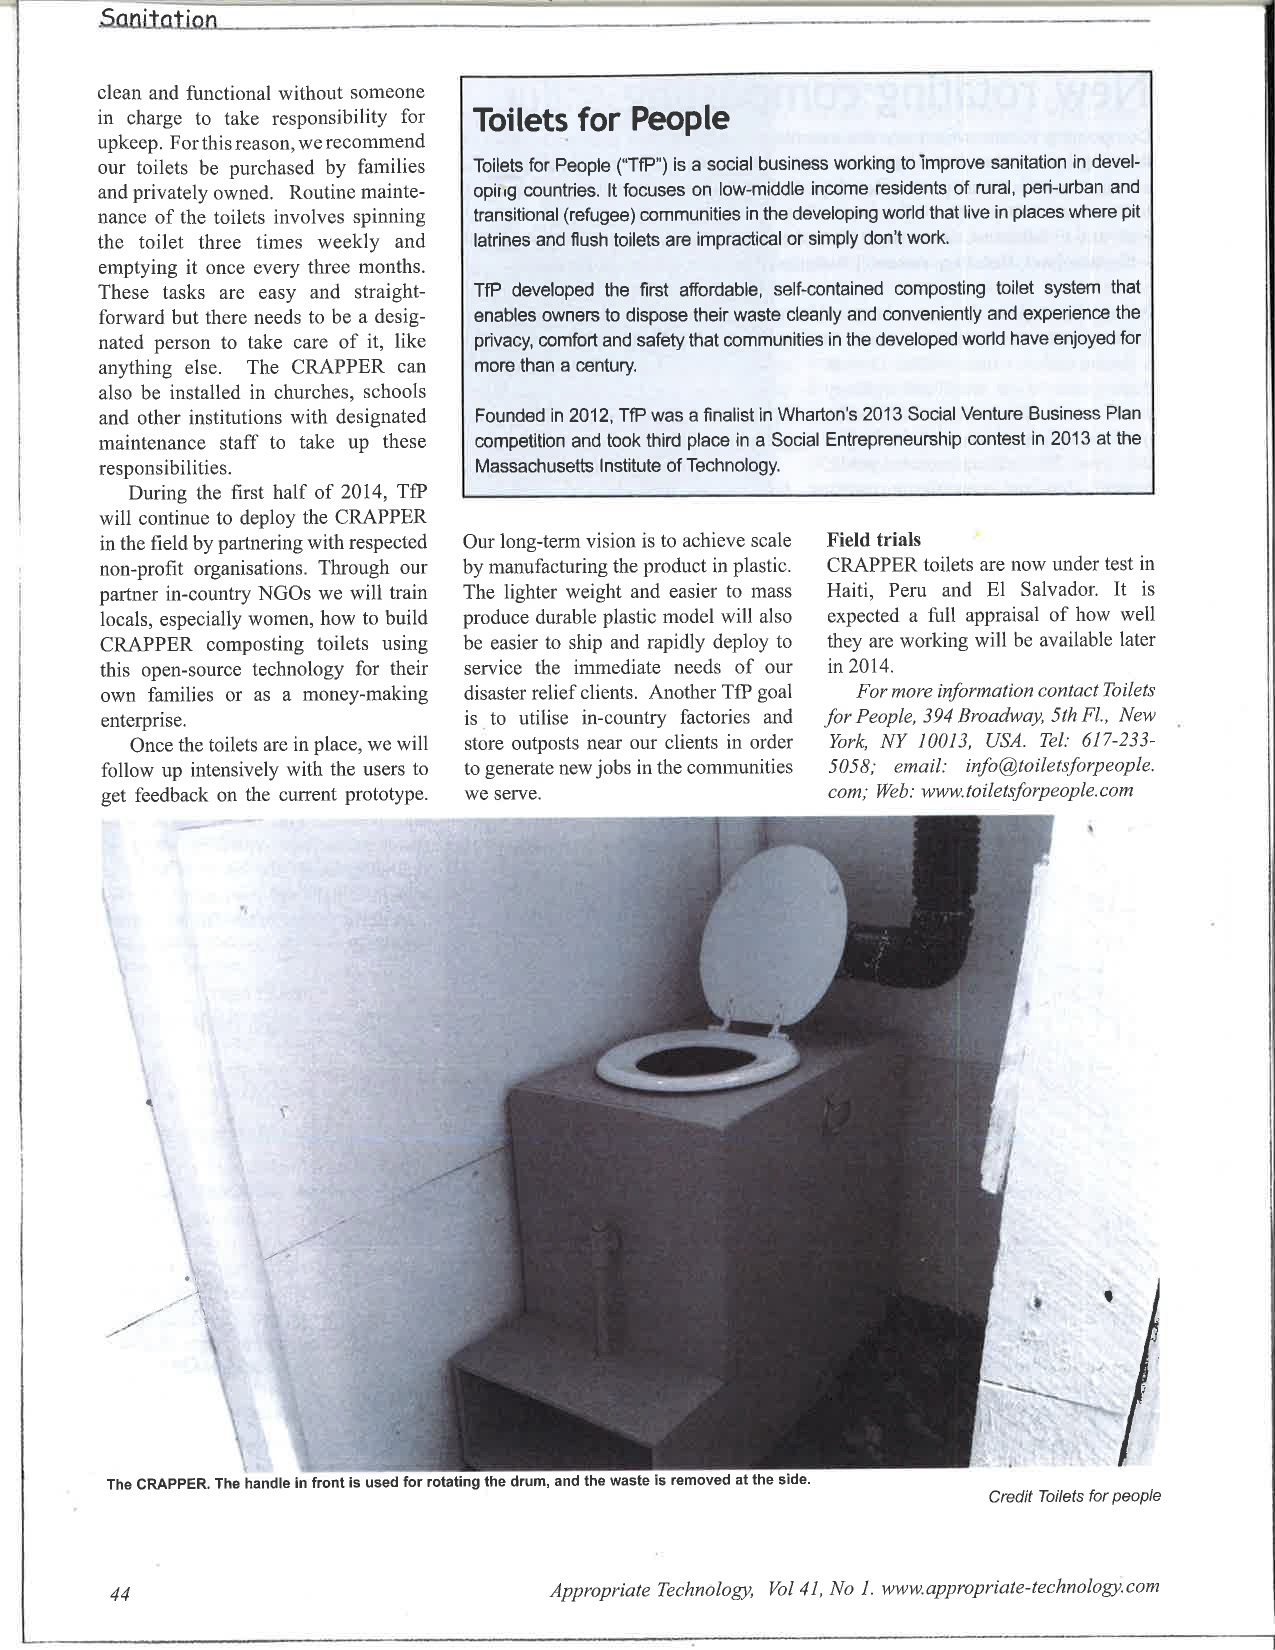 PDF Article — Toilets for People